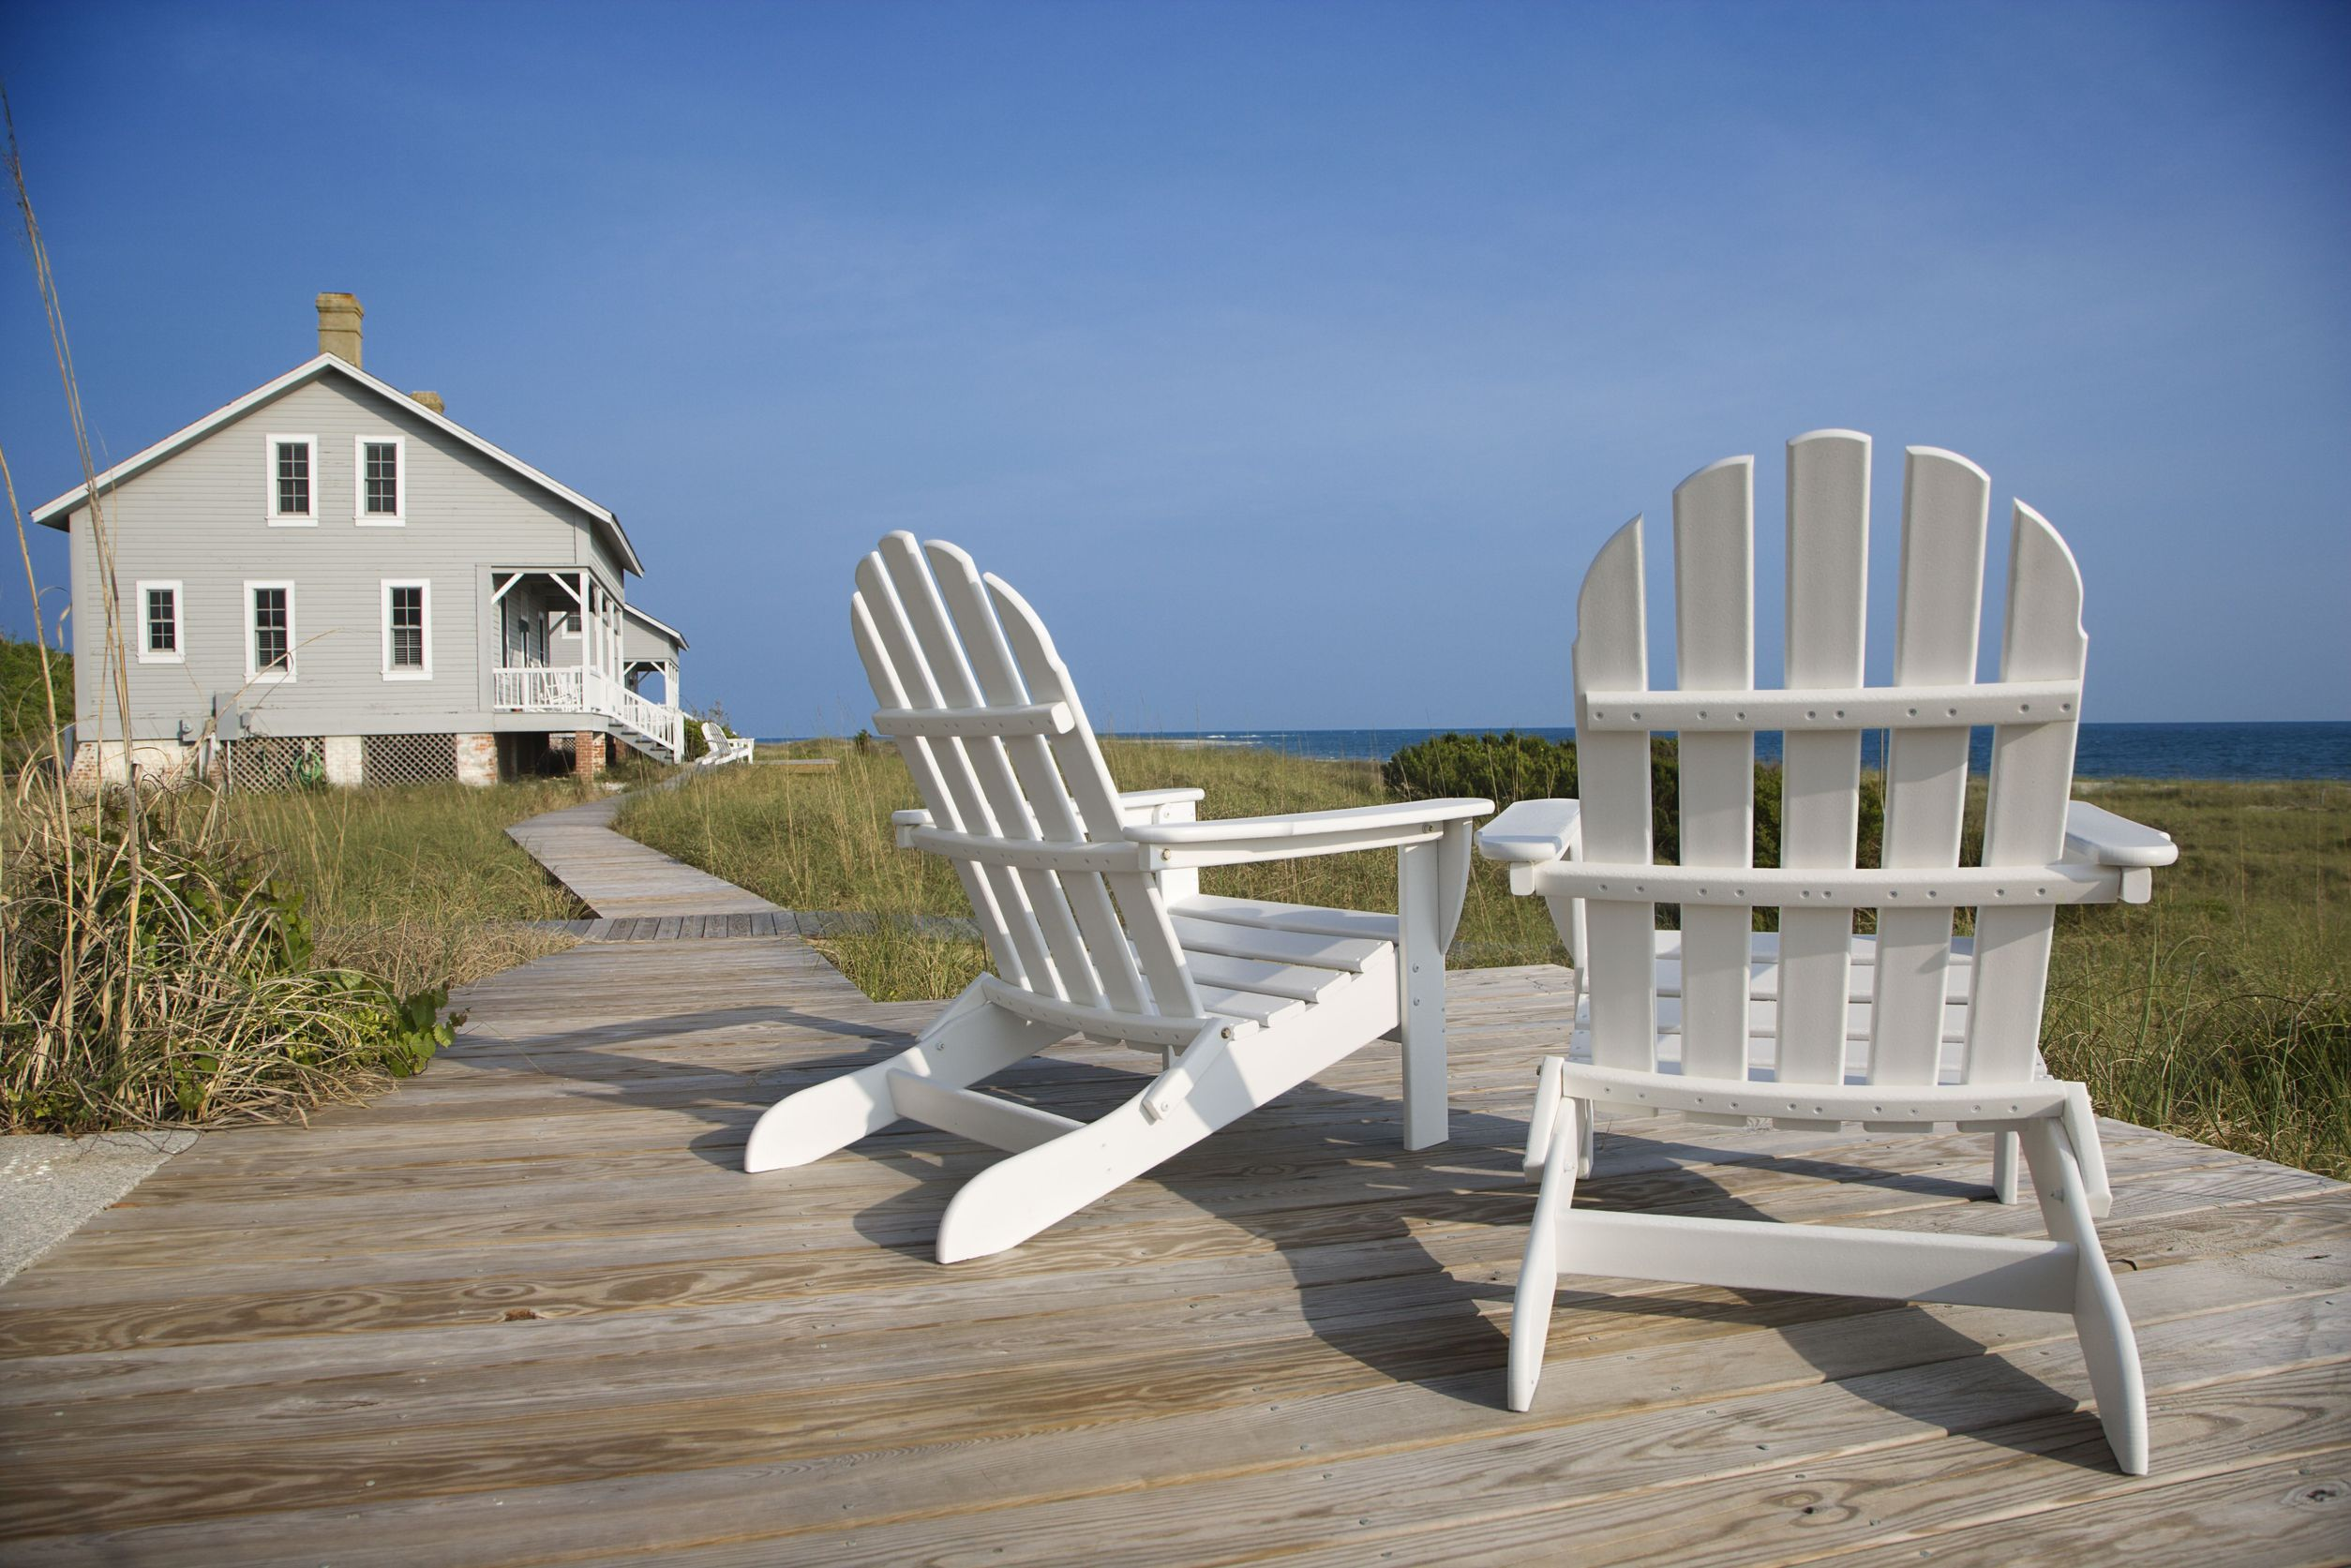 Lovely ... Chairs And Beach House. Personal Insurance Wilmington Nc